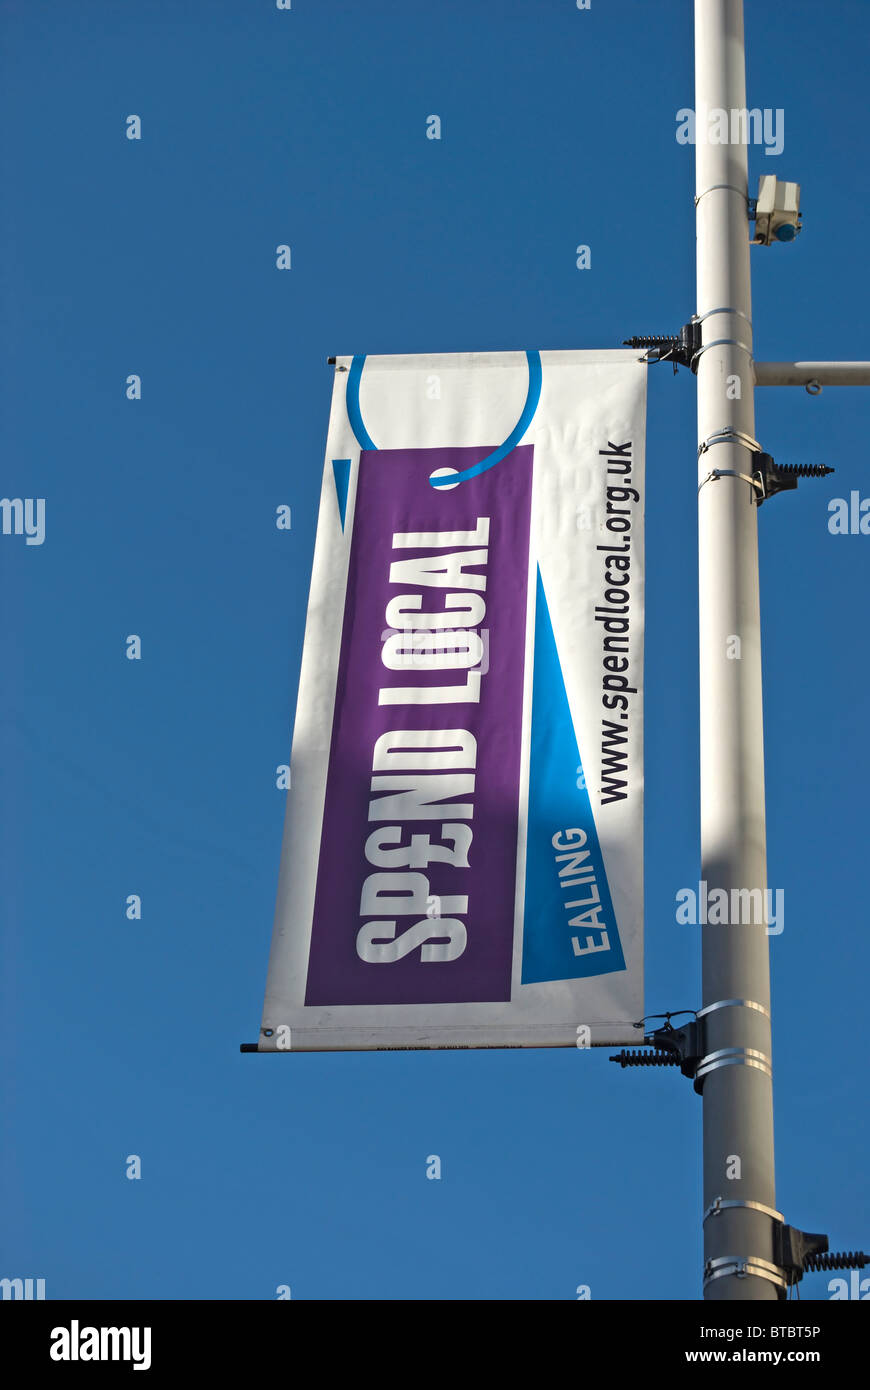 banner for spend local, a council shopping initiative in ealing west london to encourage conumers to use local shops - Stock Image